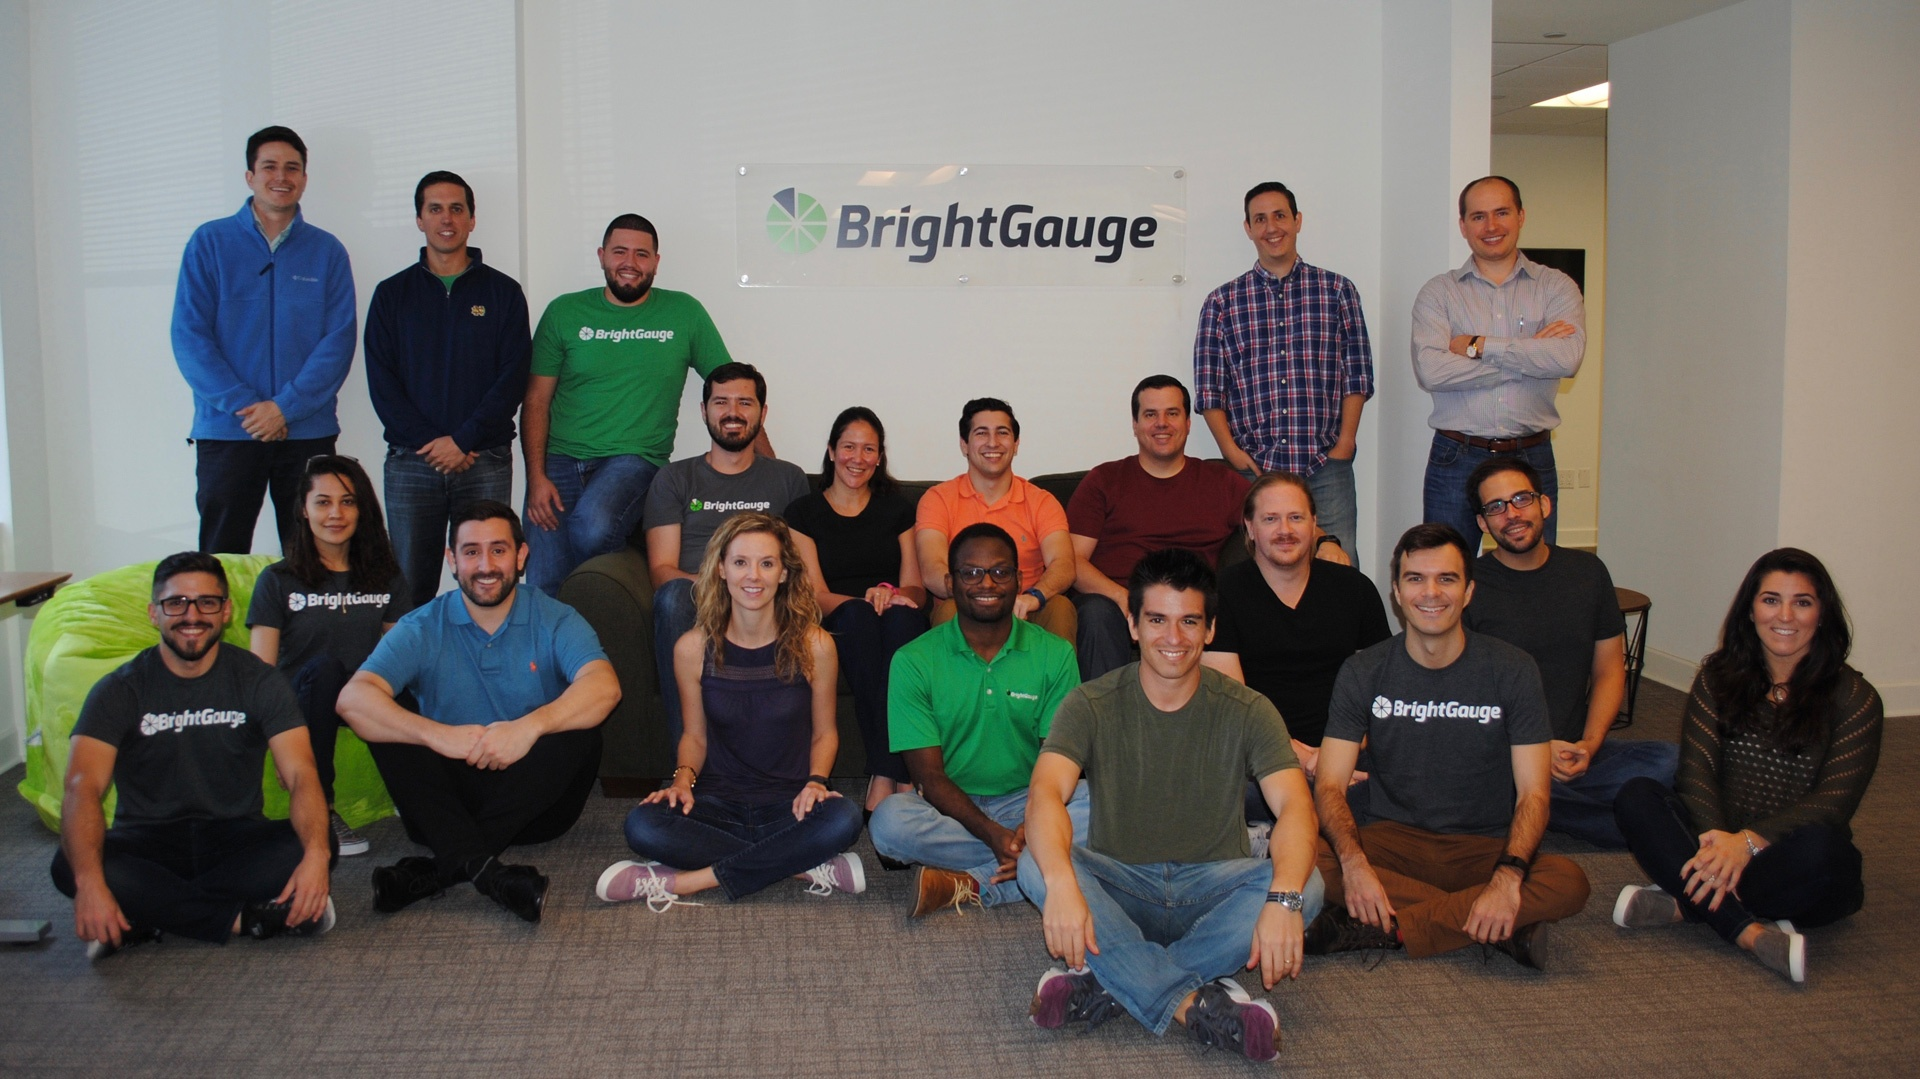 Larry Garcia Promoted to Director of Sales at BrightGauge